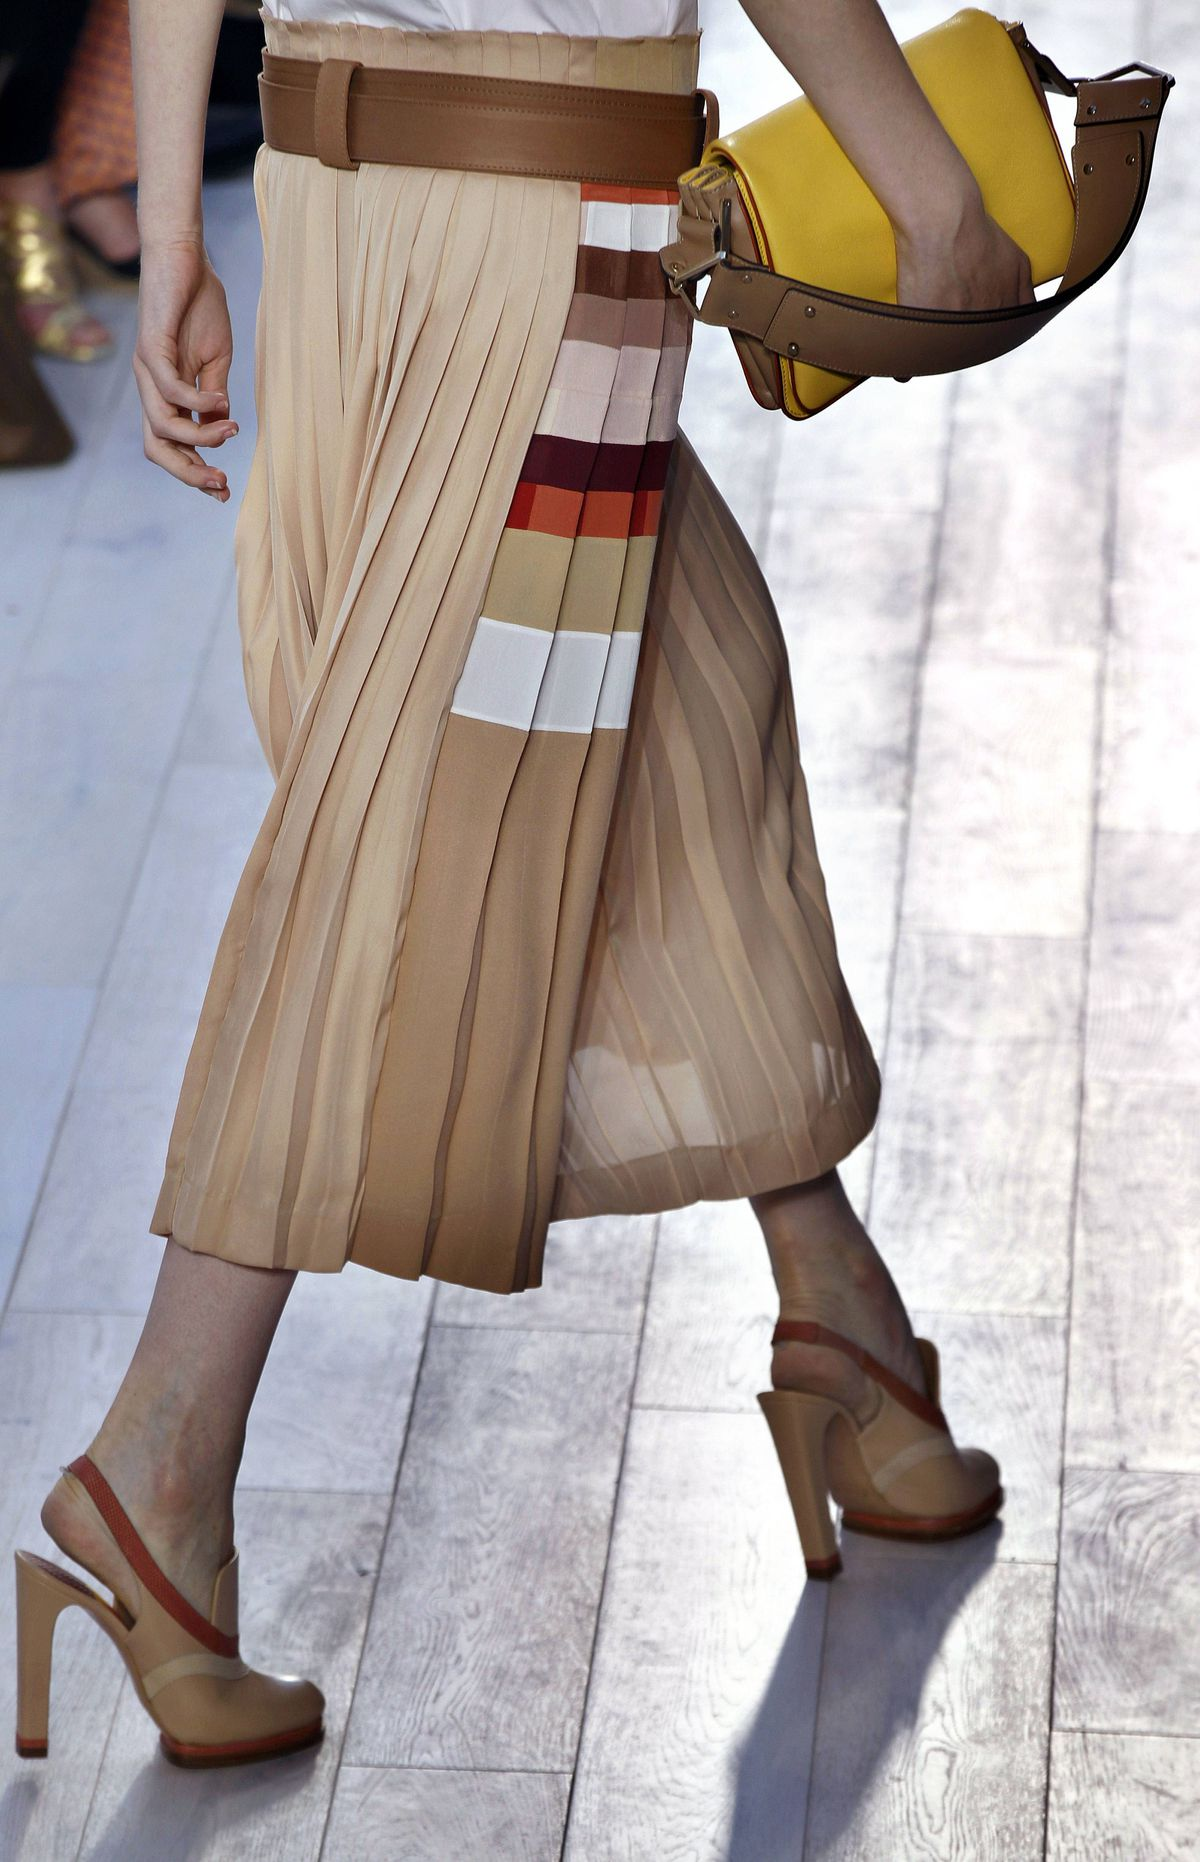 This is the first collection under the design direction of Clare Waight Keller (adieu, Hannah MacGibbon) so she's naturally feeling the need to prove herself, or at least impart a defined aesthetic. While the geometric skirt suggests distinctive graphic detail, the sling back comes across as awkward.